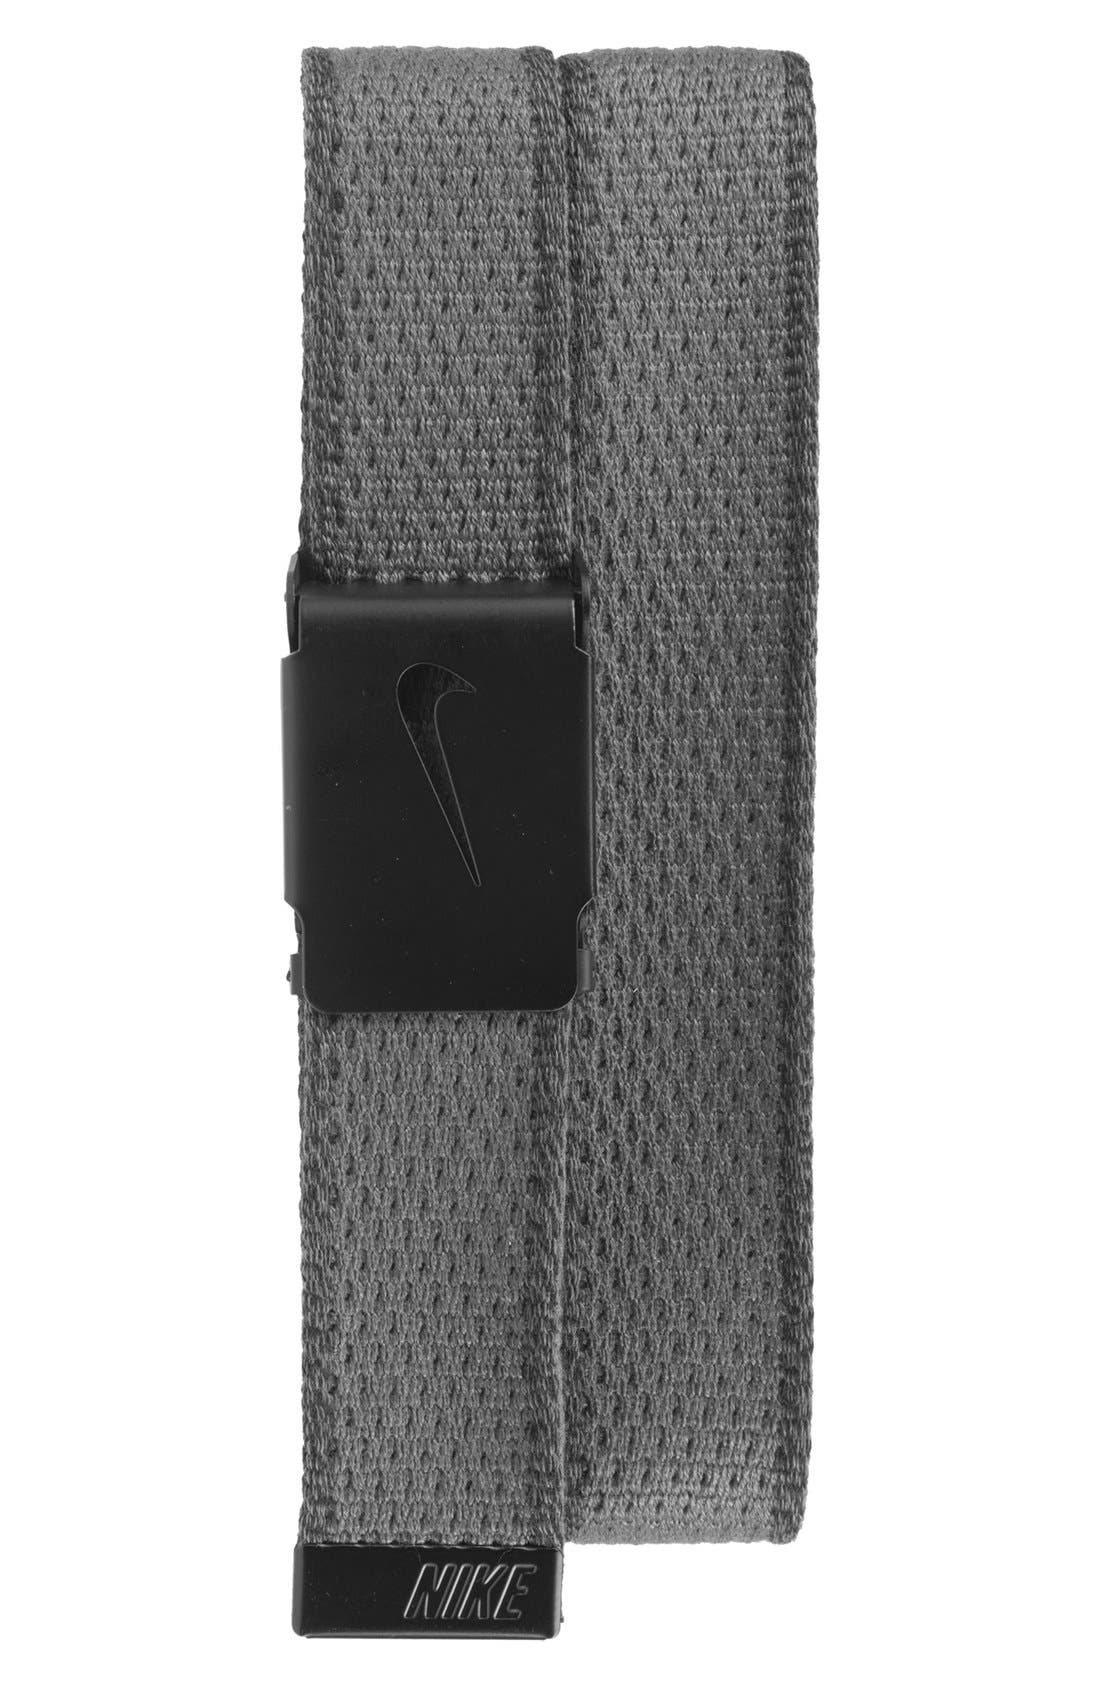 NIKE Knit Web Belt